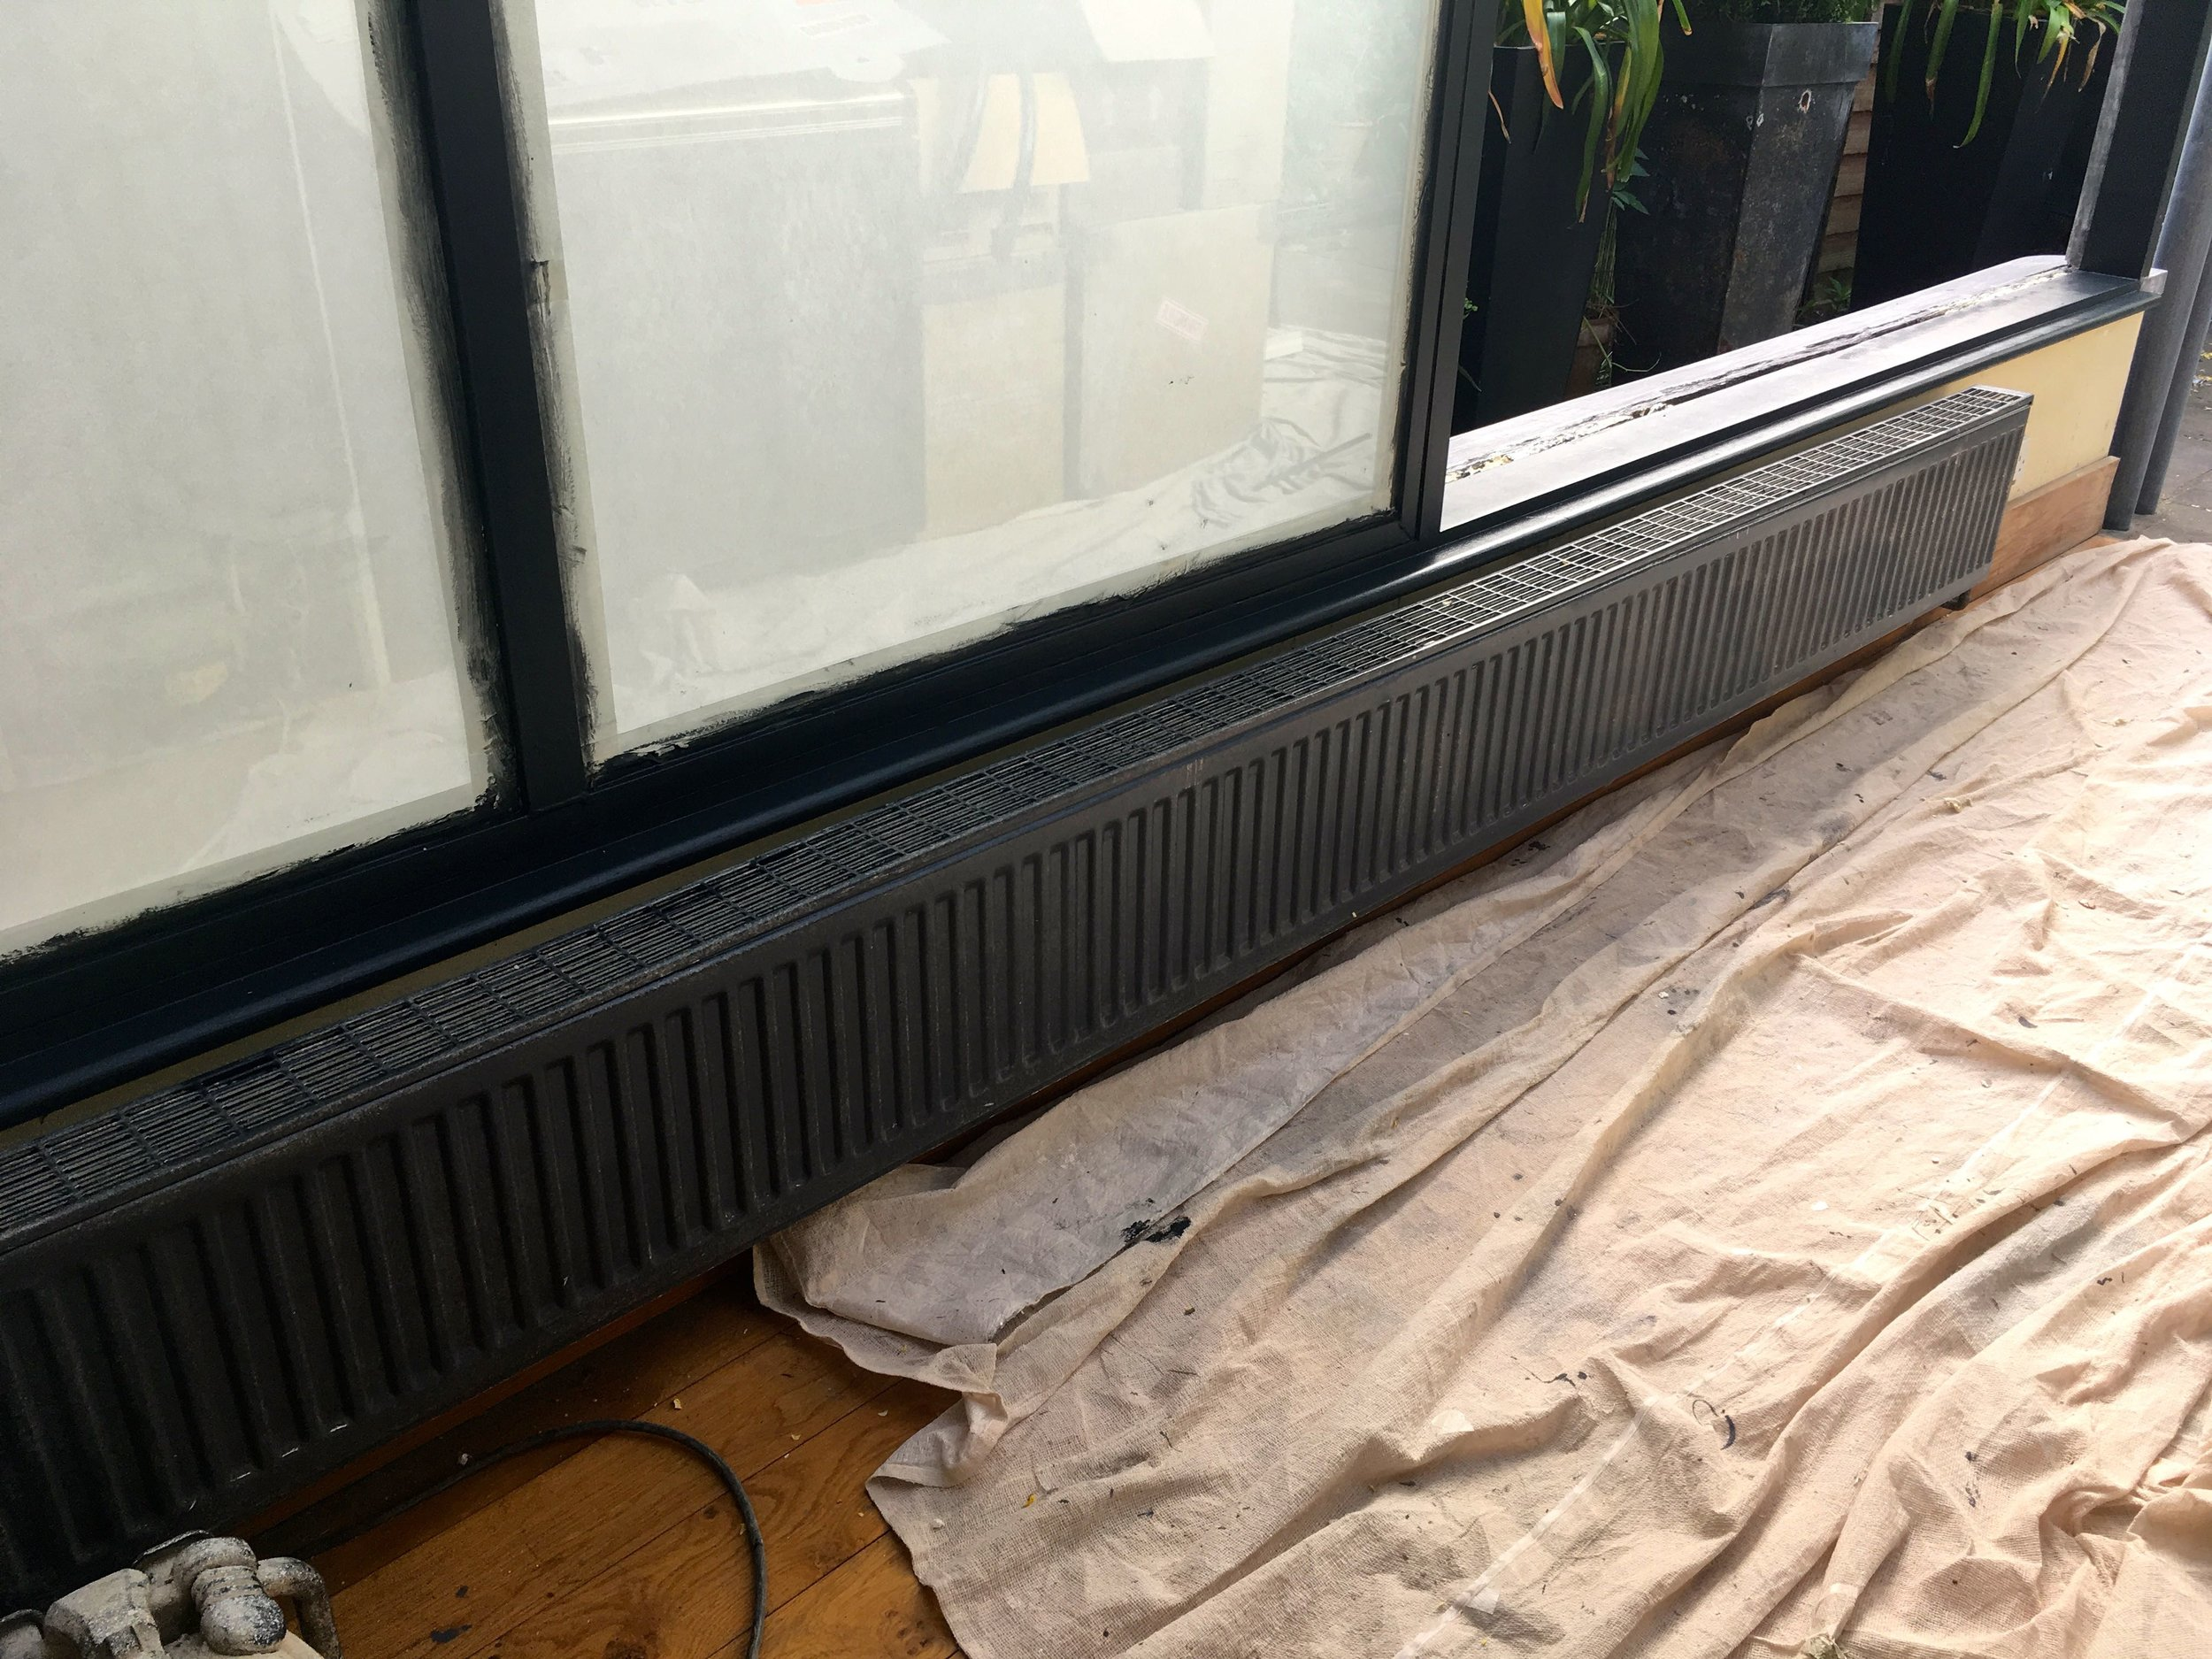 GIVING THE RADIATOR A NEW LEASE OF LIFE